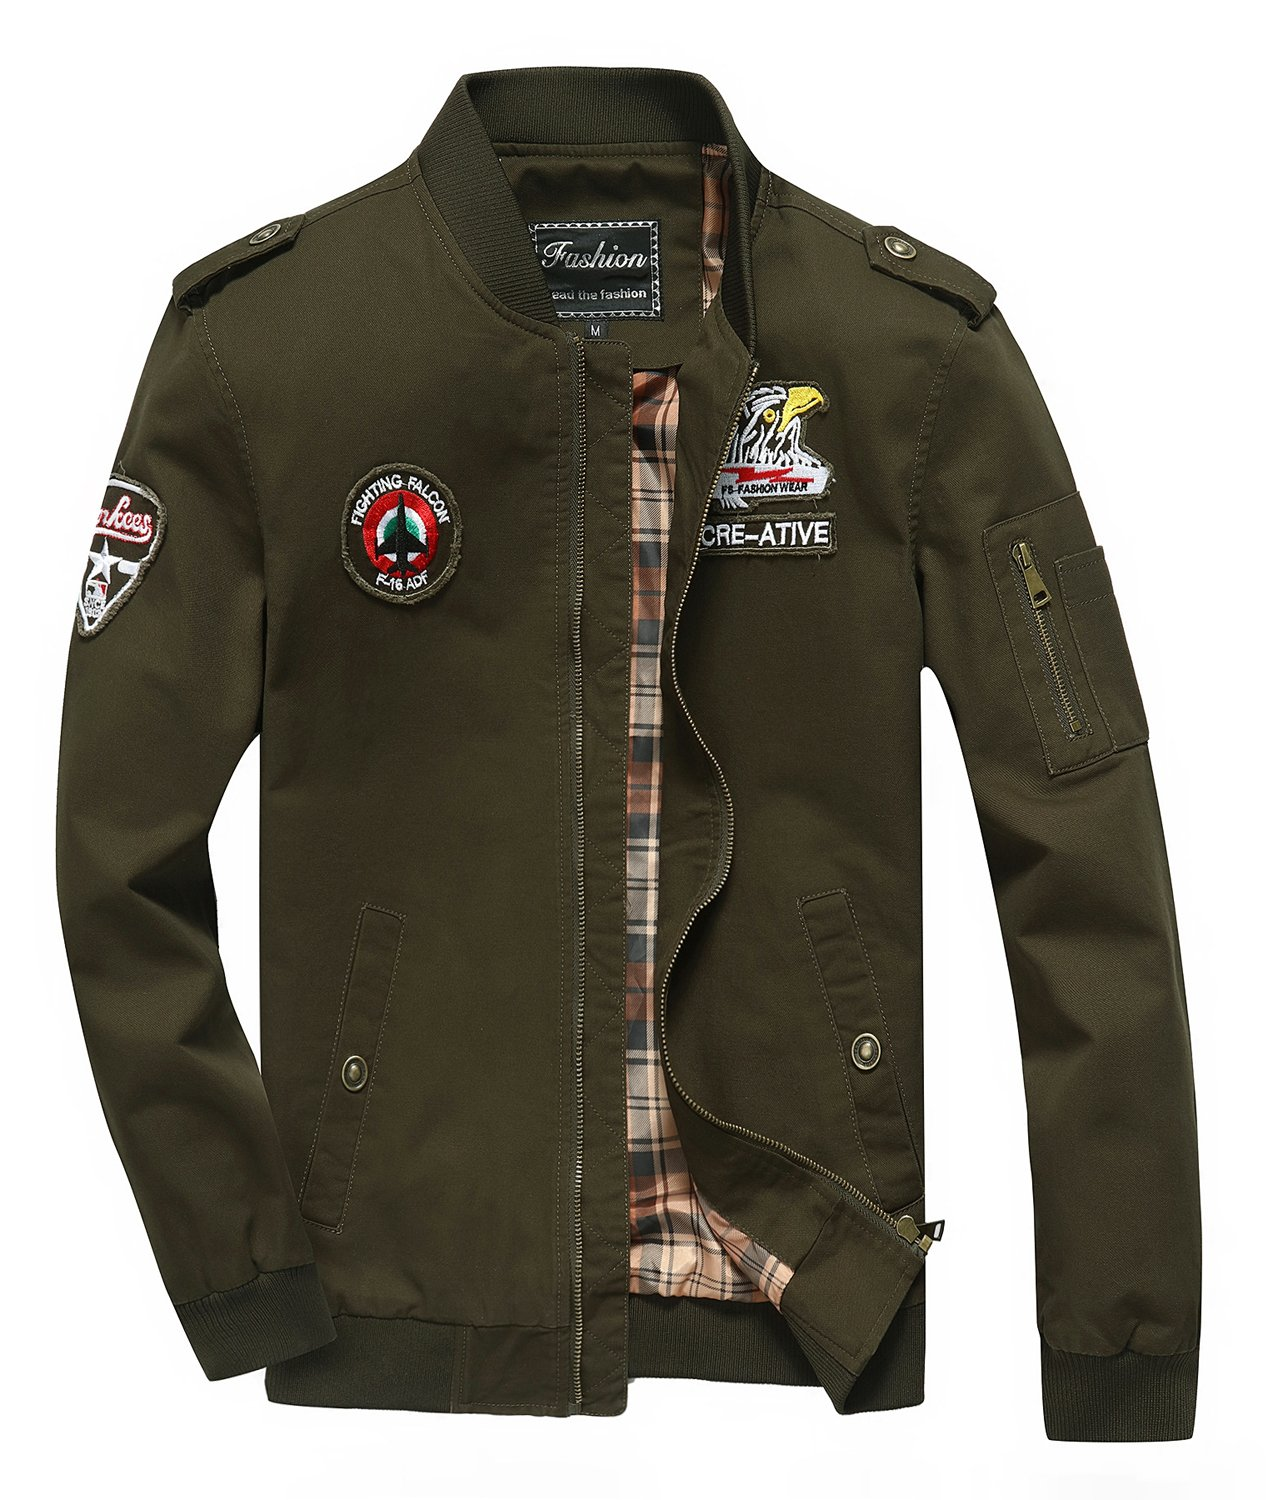 Cheerun Men's Bomber Jacket Military Jacket Men Lightweight Warm Cotton Casual Jackets Thick Stand Collar Coat Army Green Large by Cheerun